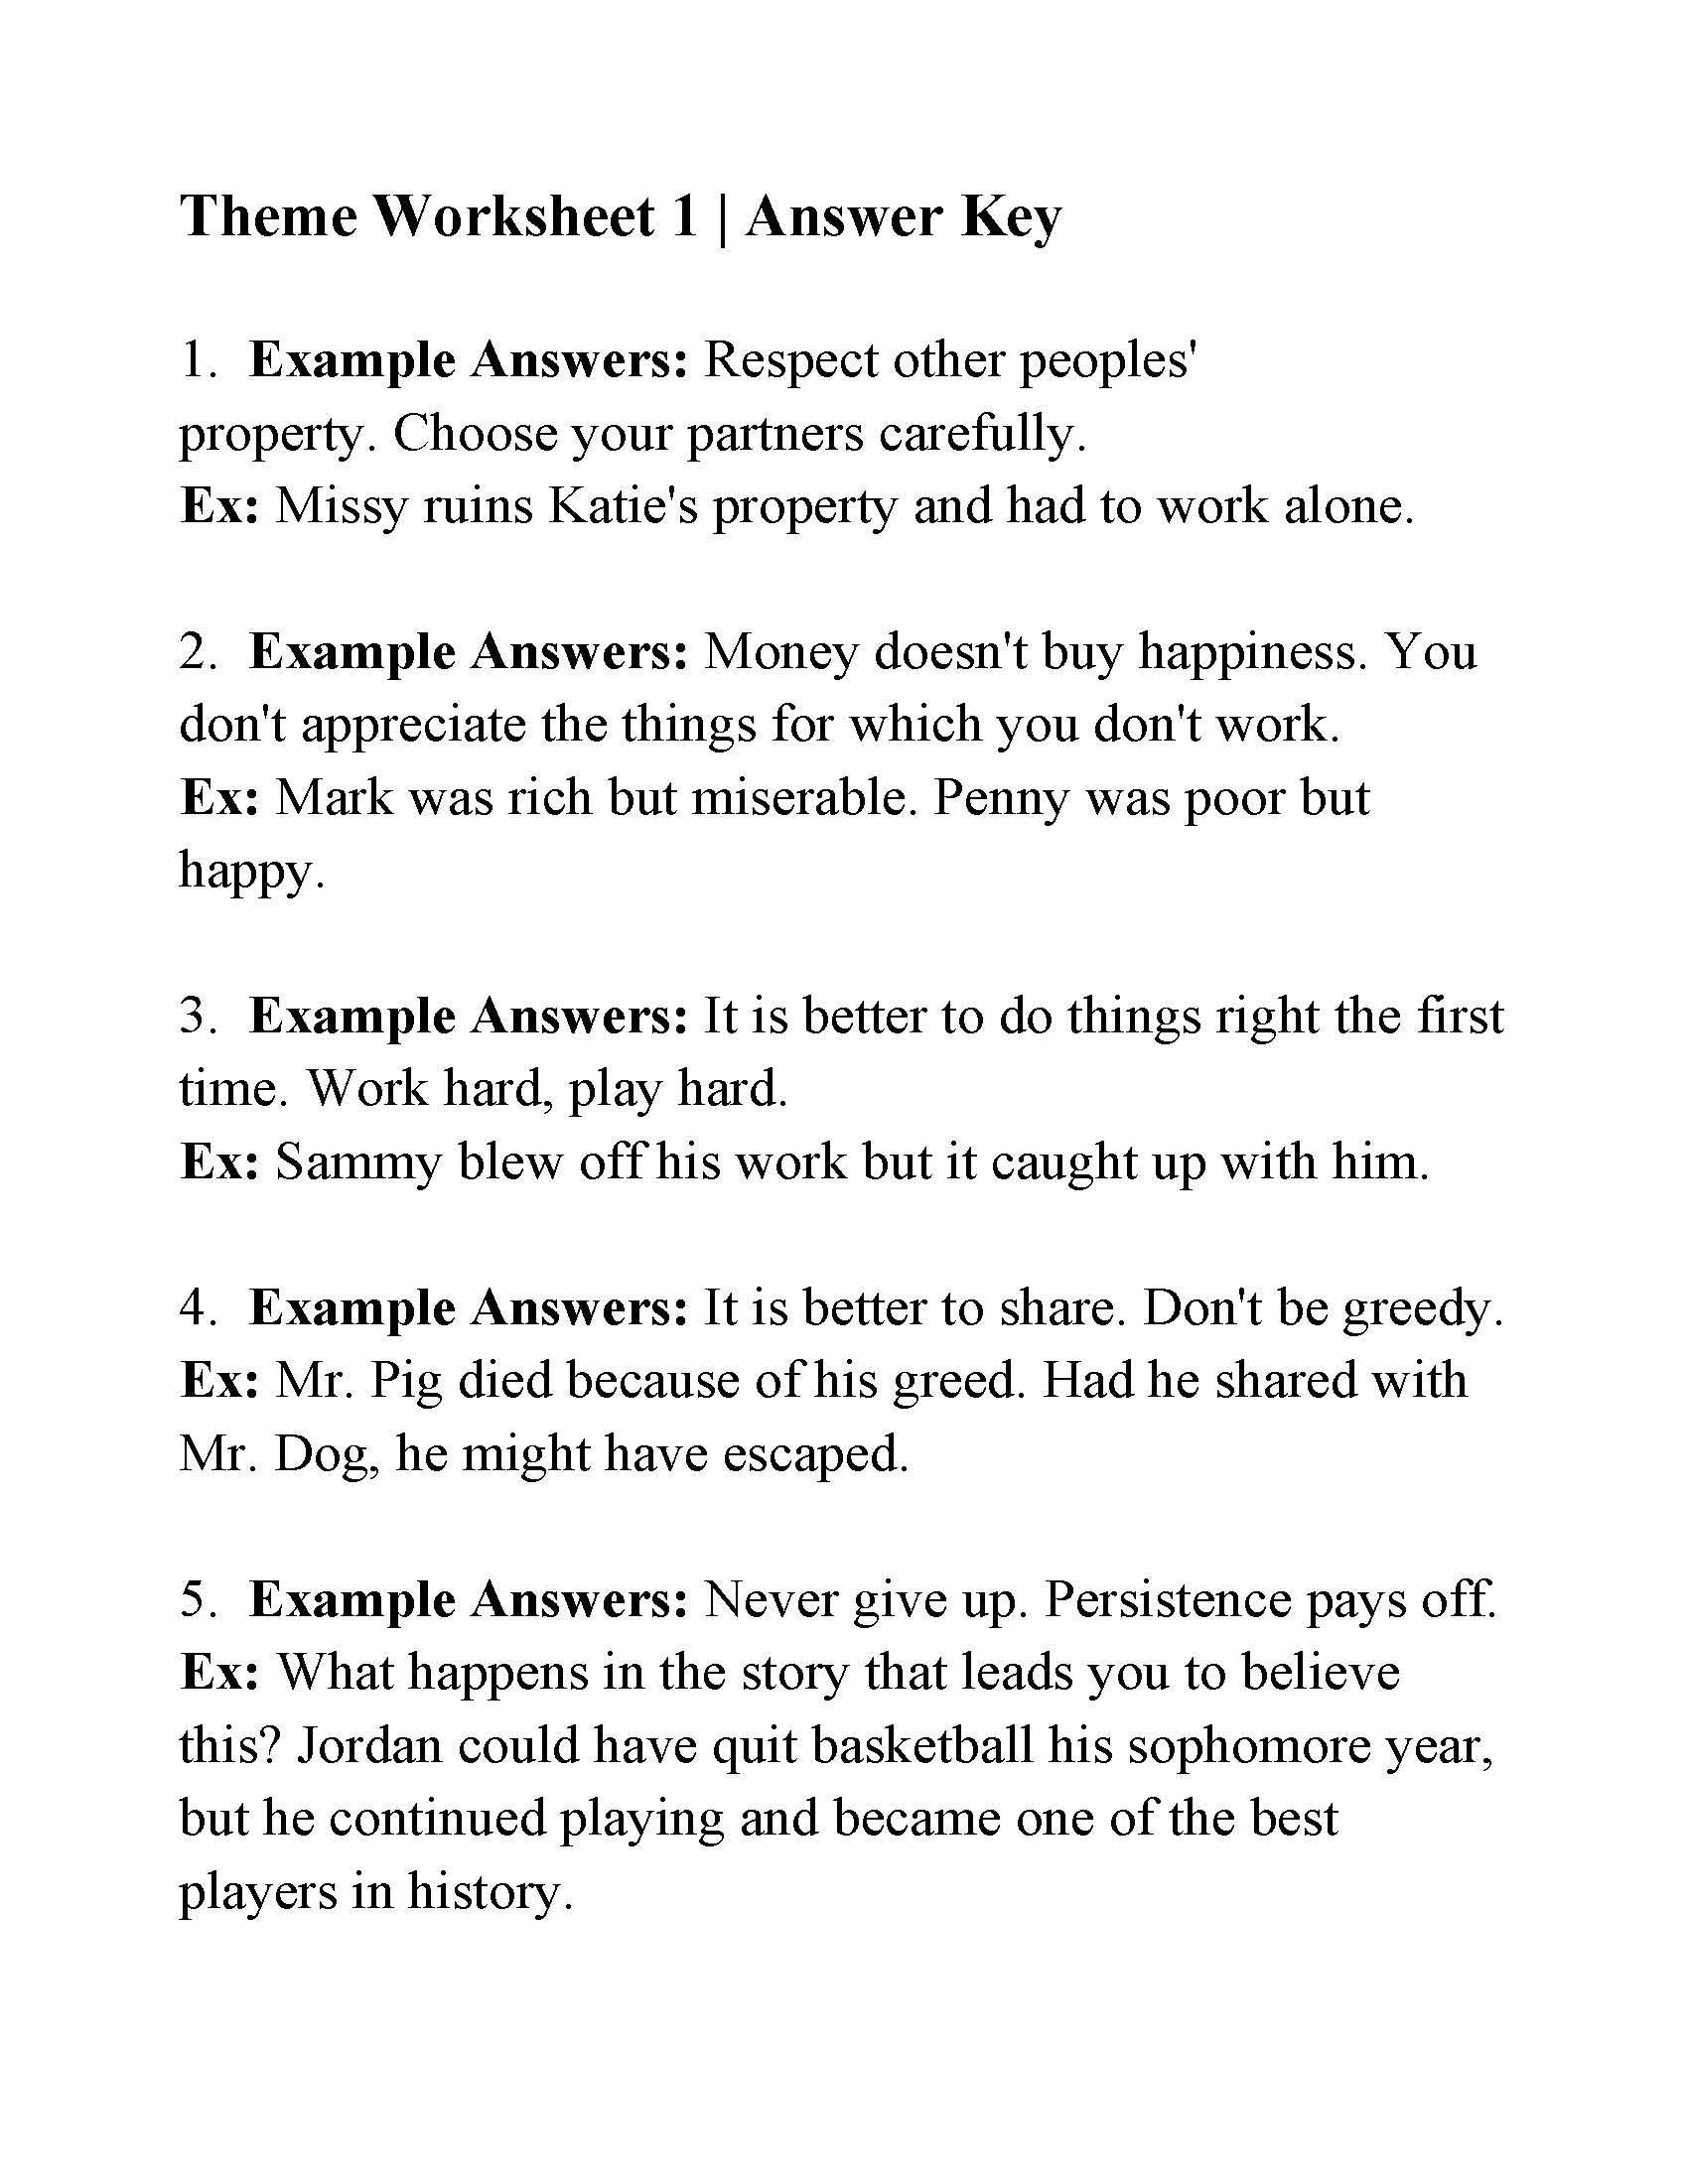 5th Grade theme Worksheets This is the Answer Key for the theme Worksheet 1